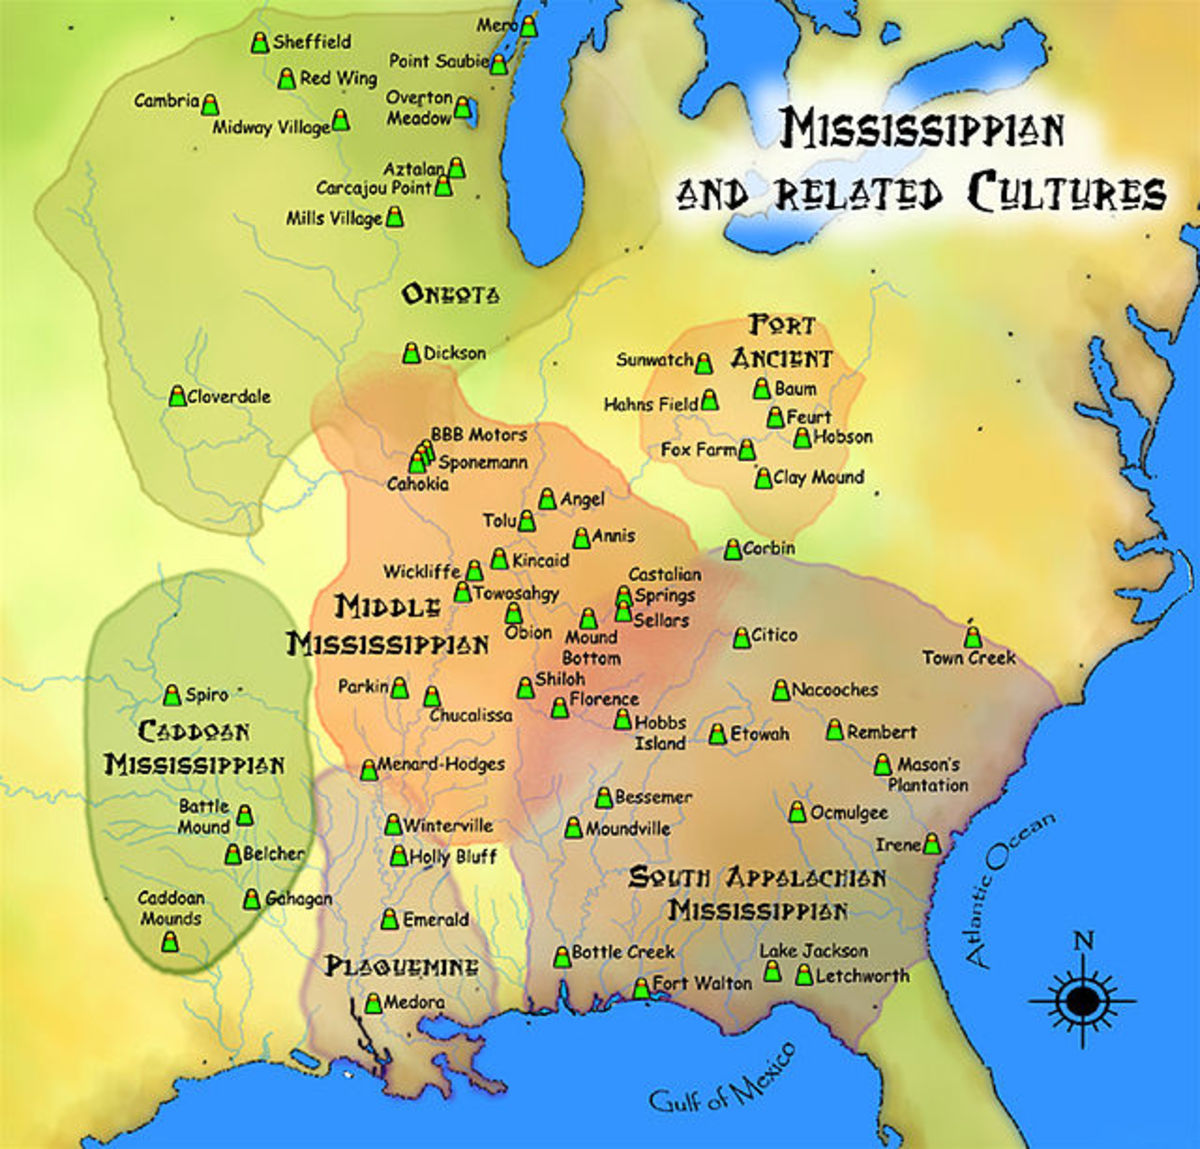 Map showing the Mississippian cultures of ancient America